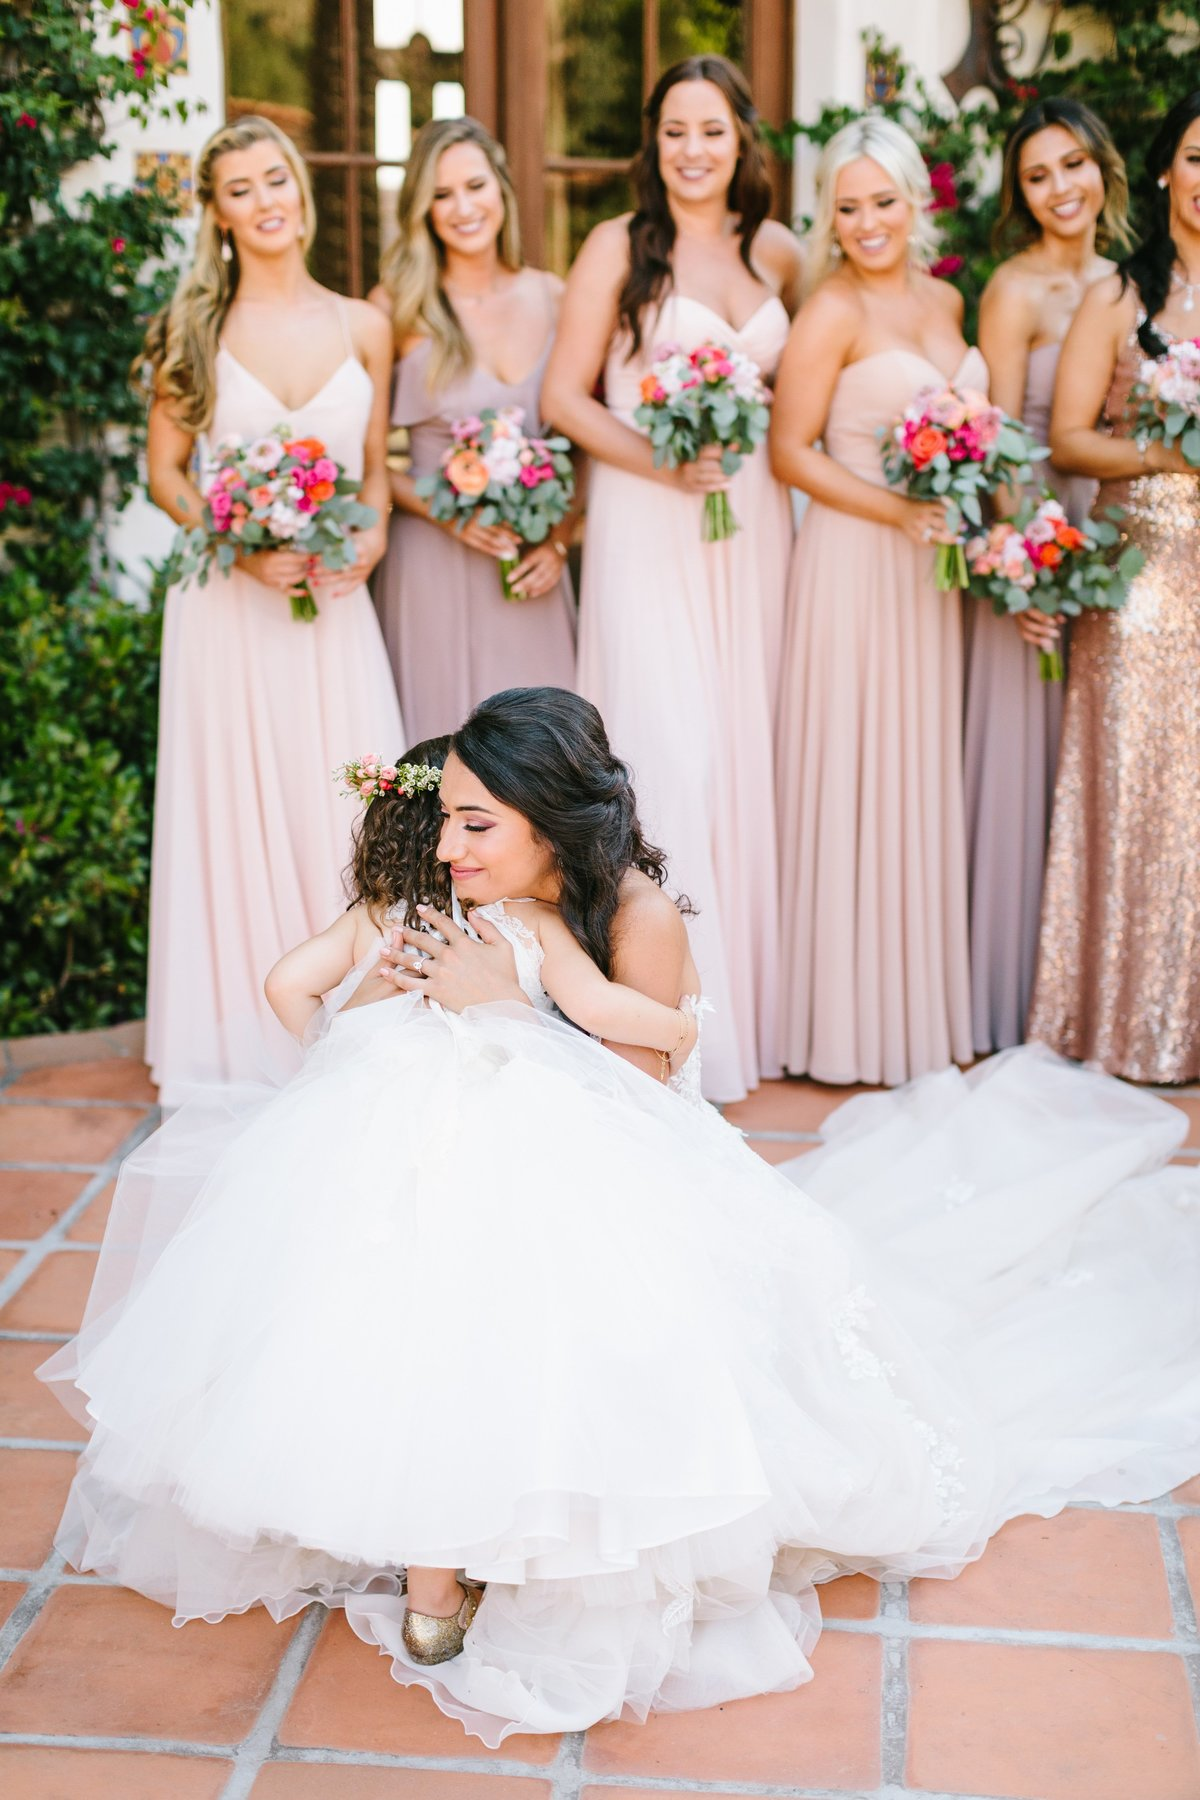 Best California Wedding Photographer-Jodee Debes Photography-375